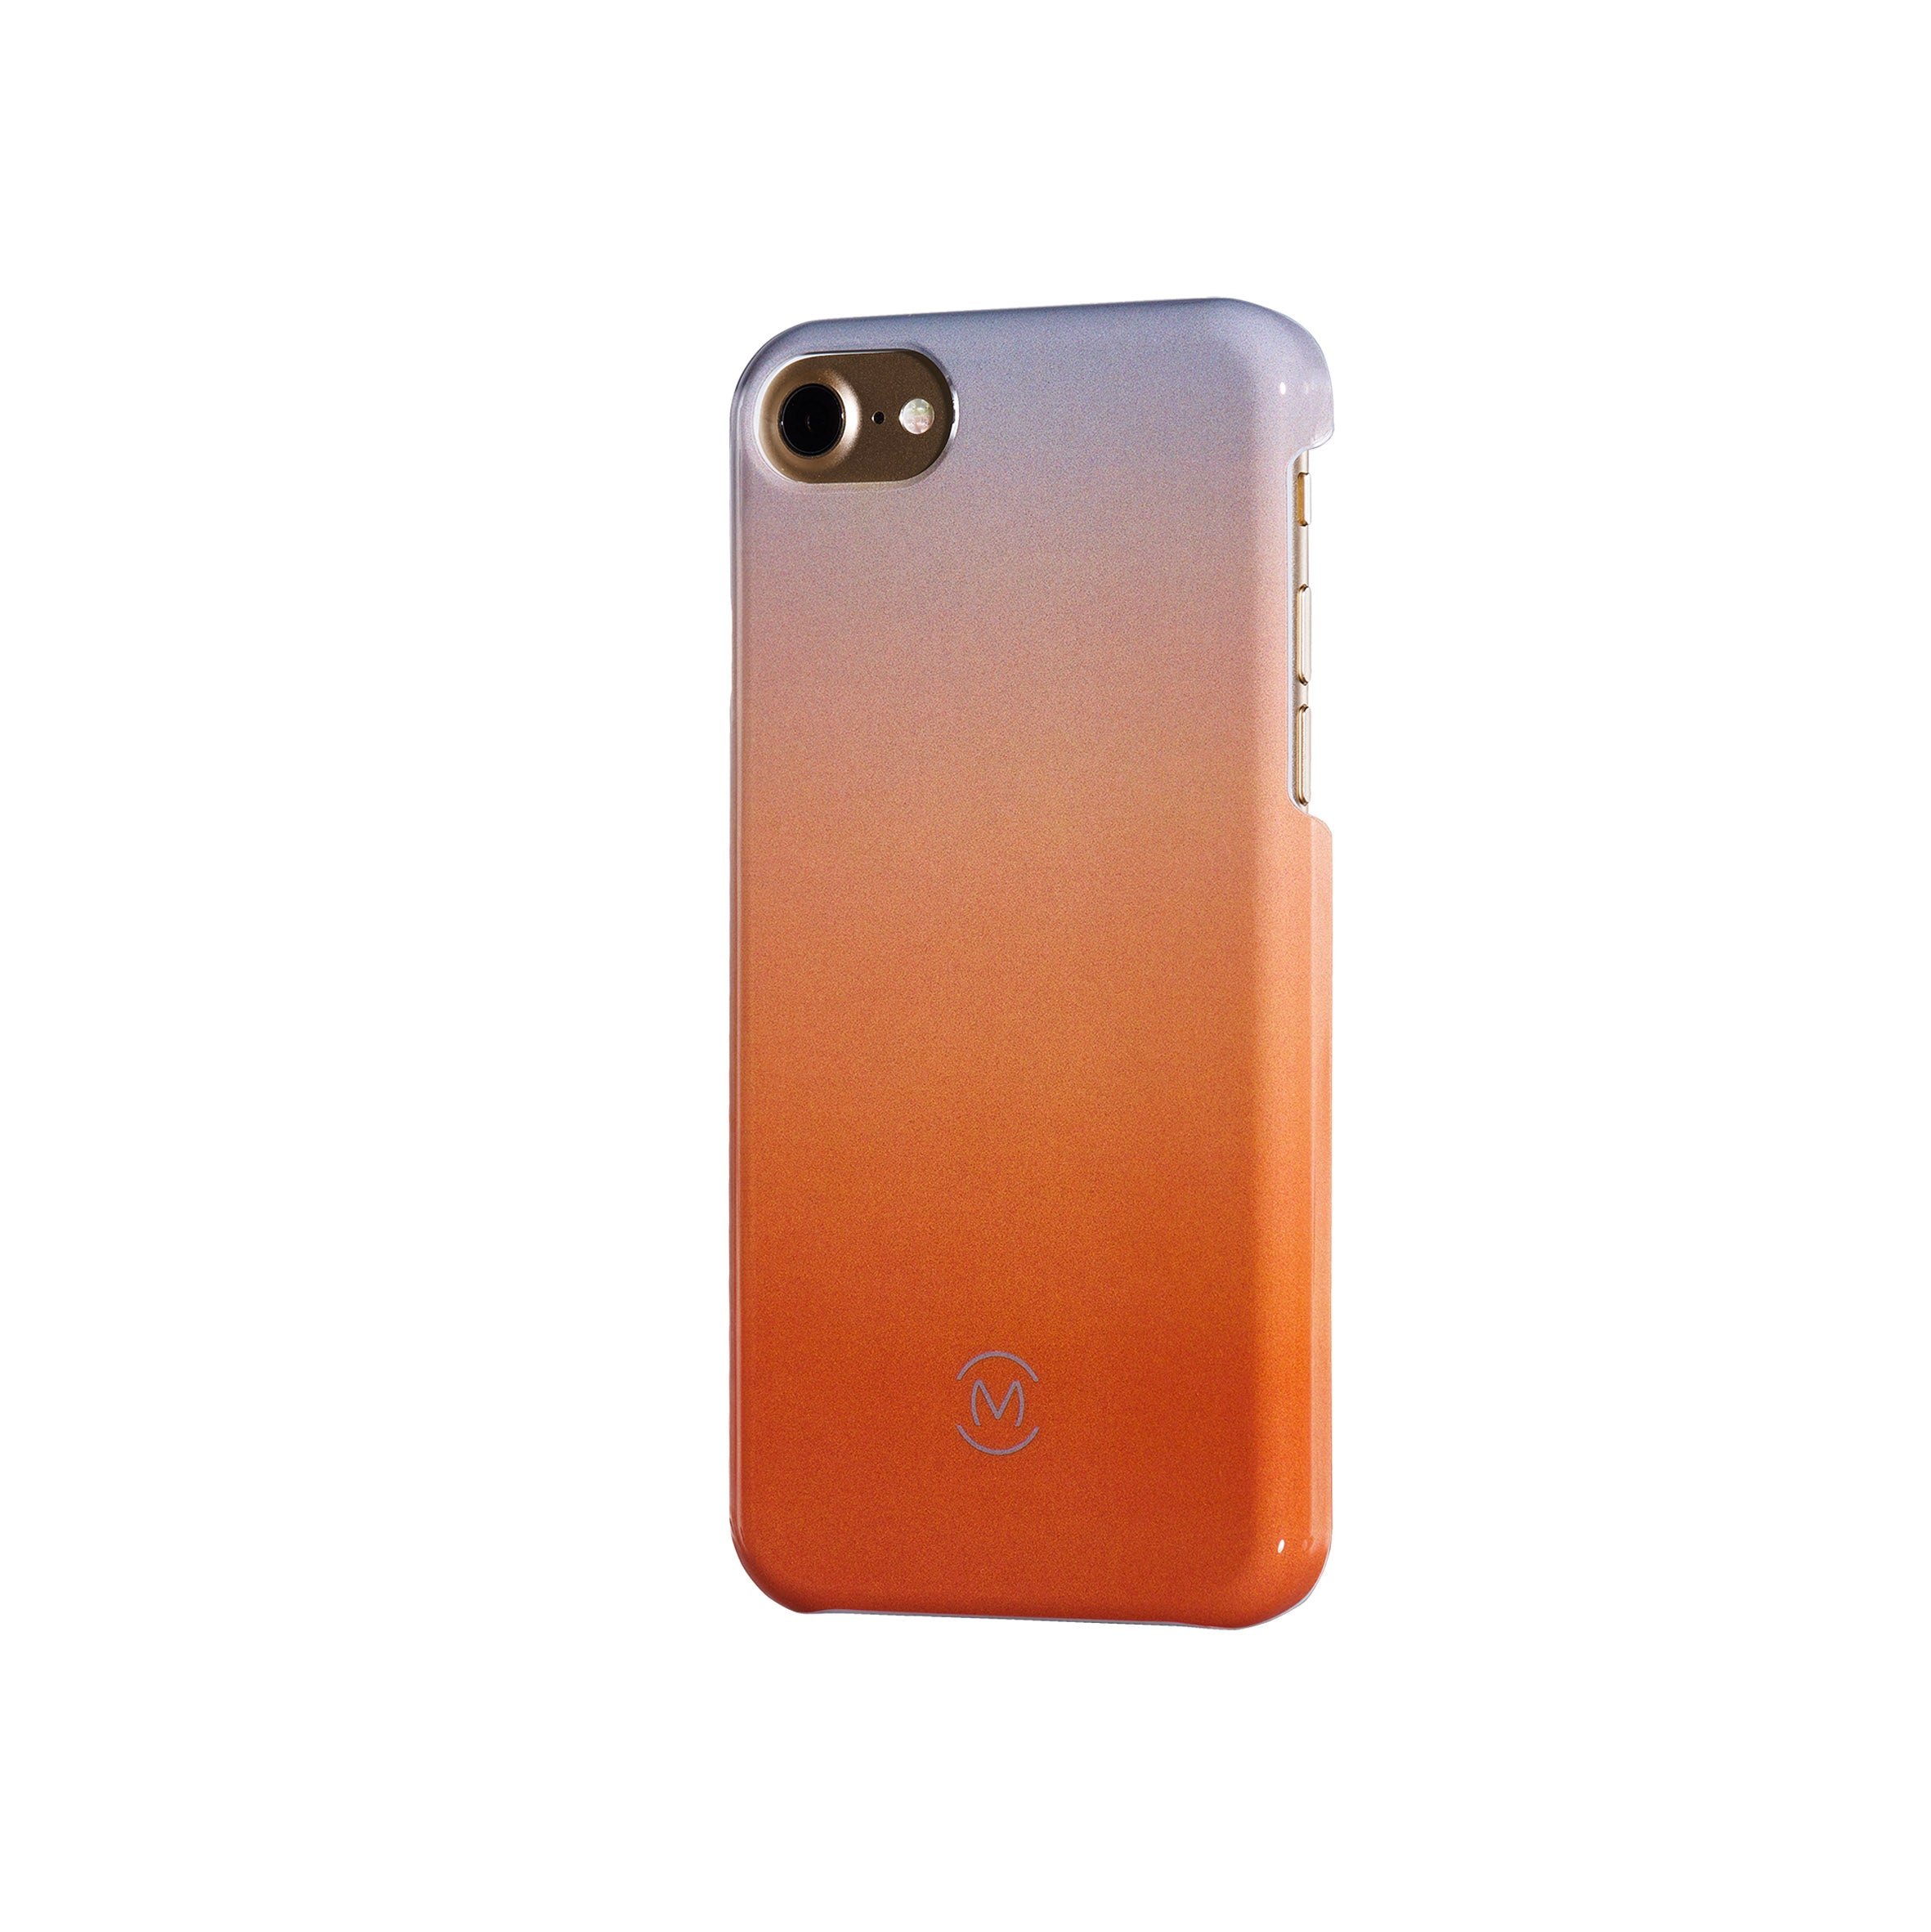 Gray-Orange Gradient Harvest Moon Recyclable Phone Case by Movement for iPhone 8, iPhone 7, iPhone 6s, and iPhone 6 (Right)